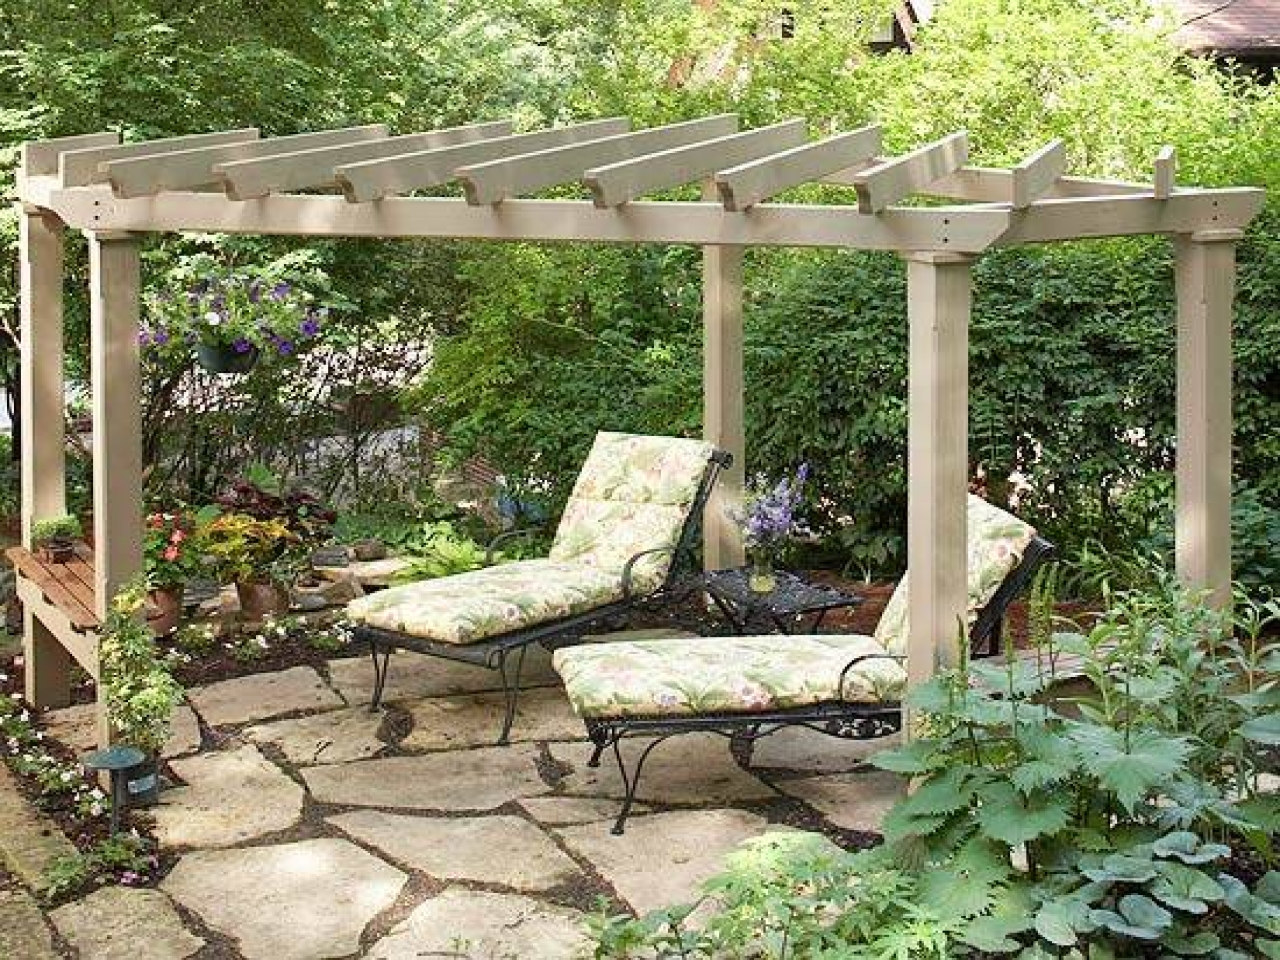 low price pergola attached to house ideas garden landscape patio outdoor patio and backyard